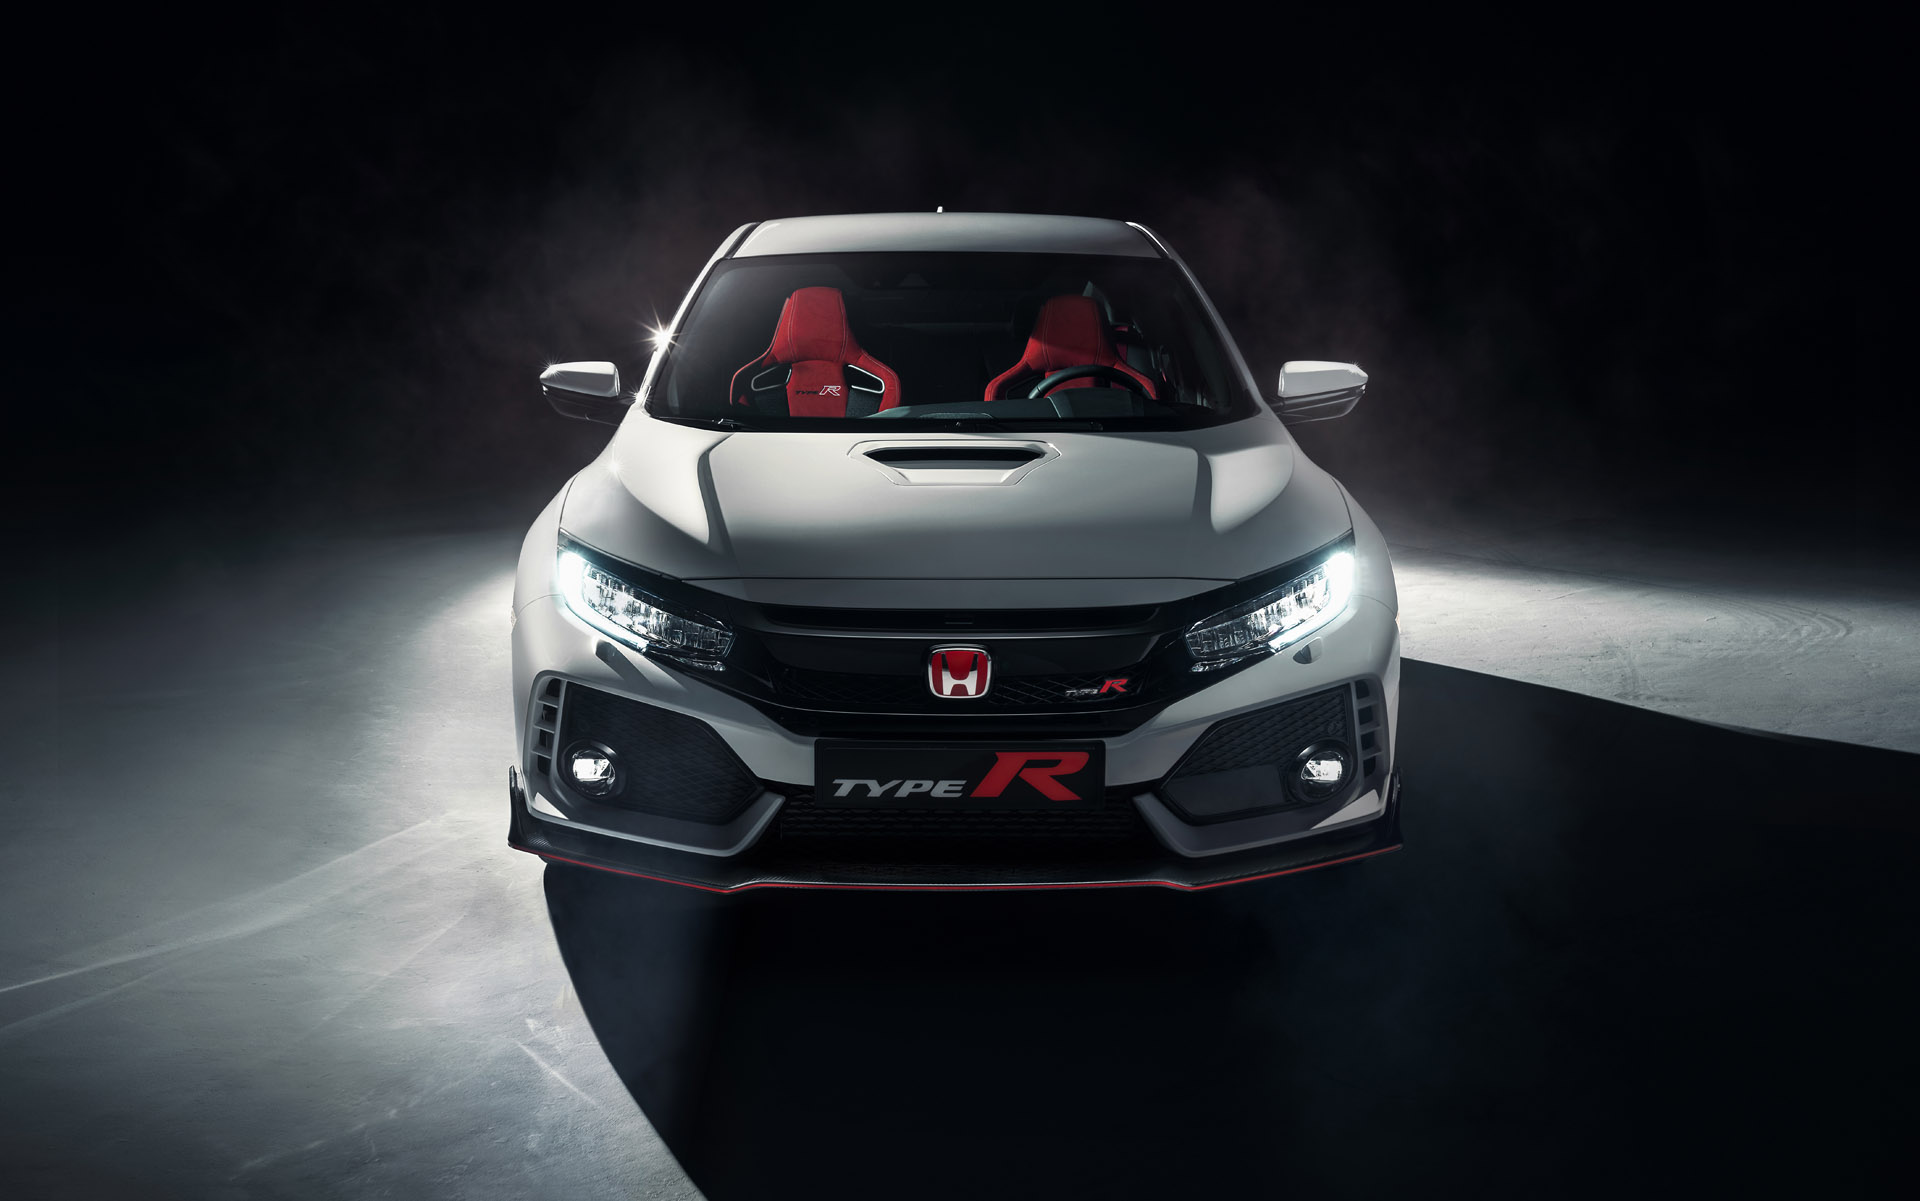 The New Civic Type R: Too Much? Or Just Right? - Speedhunters